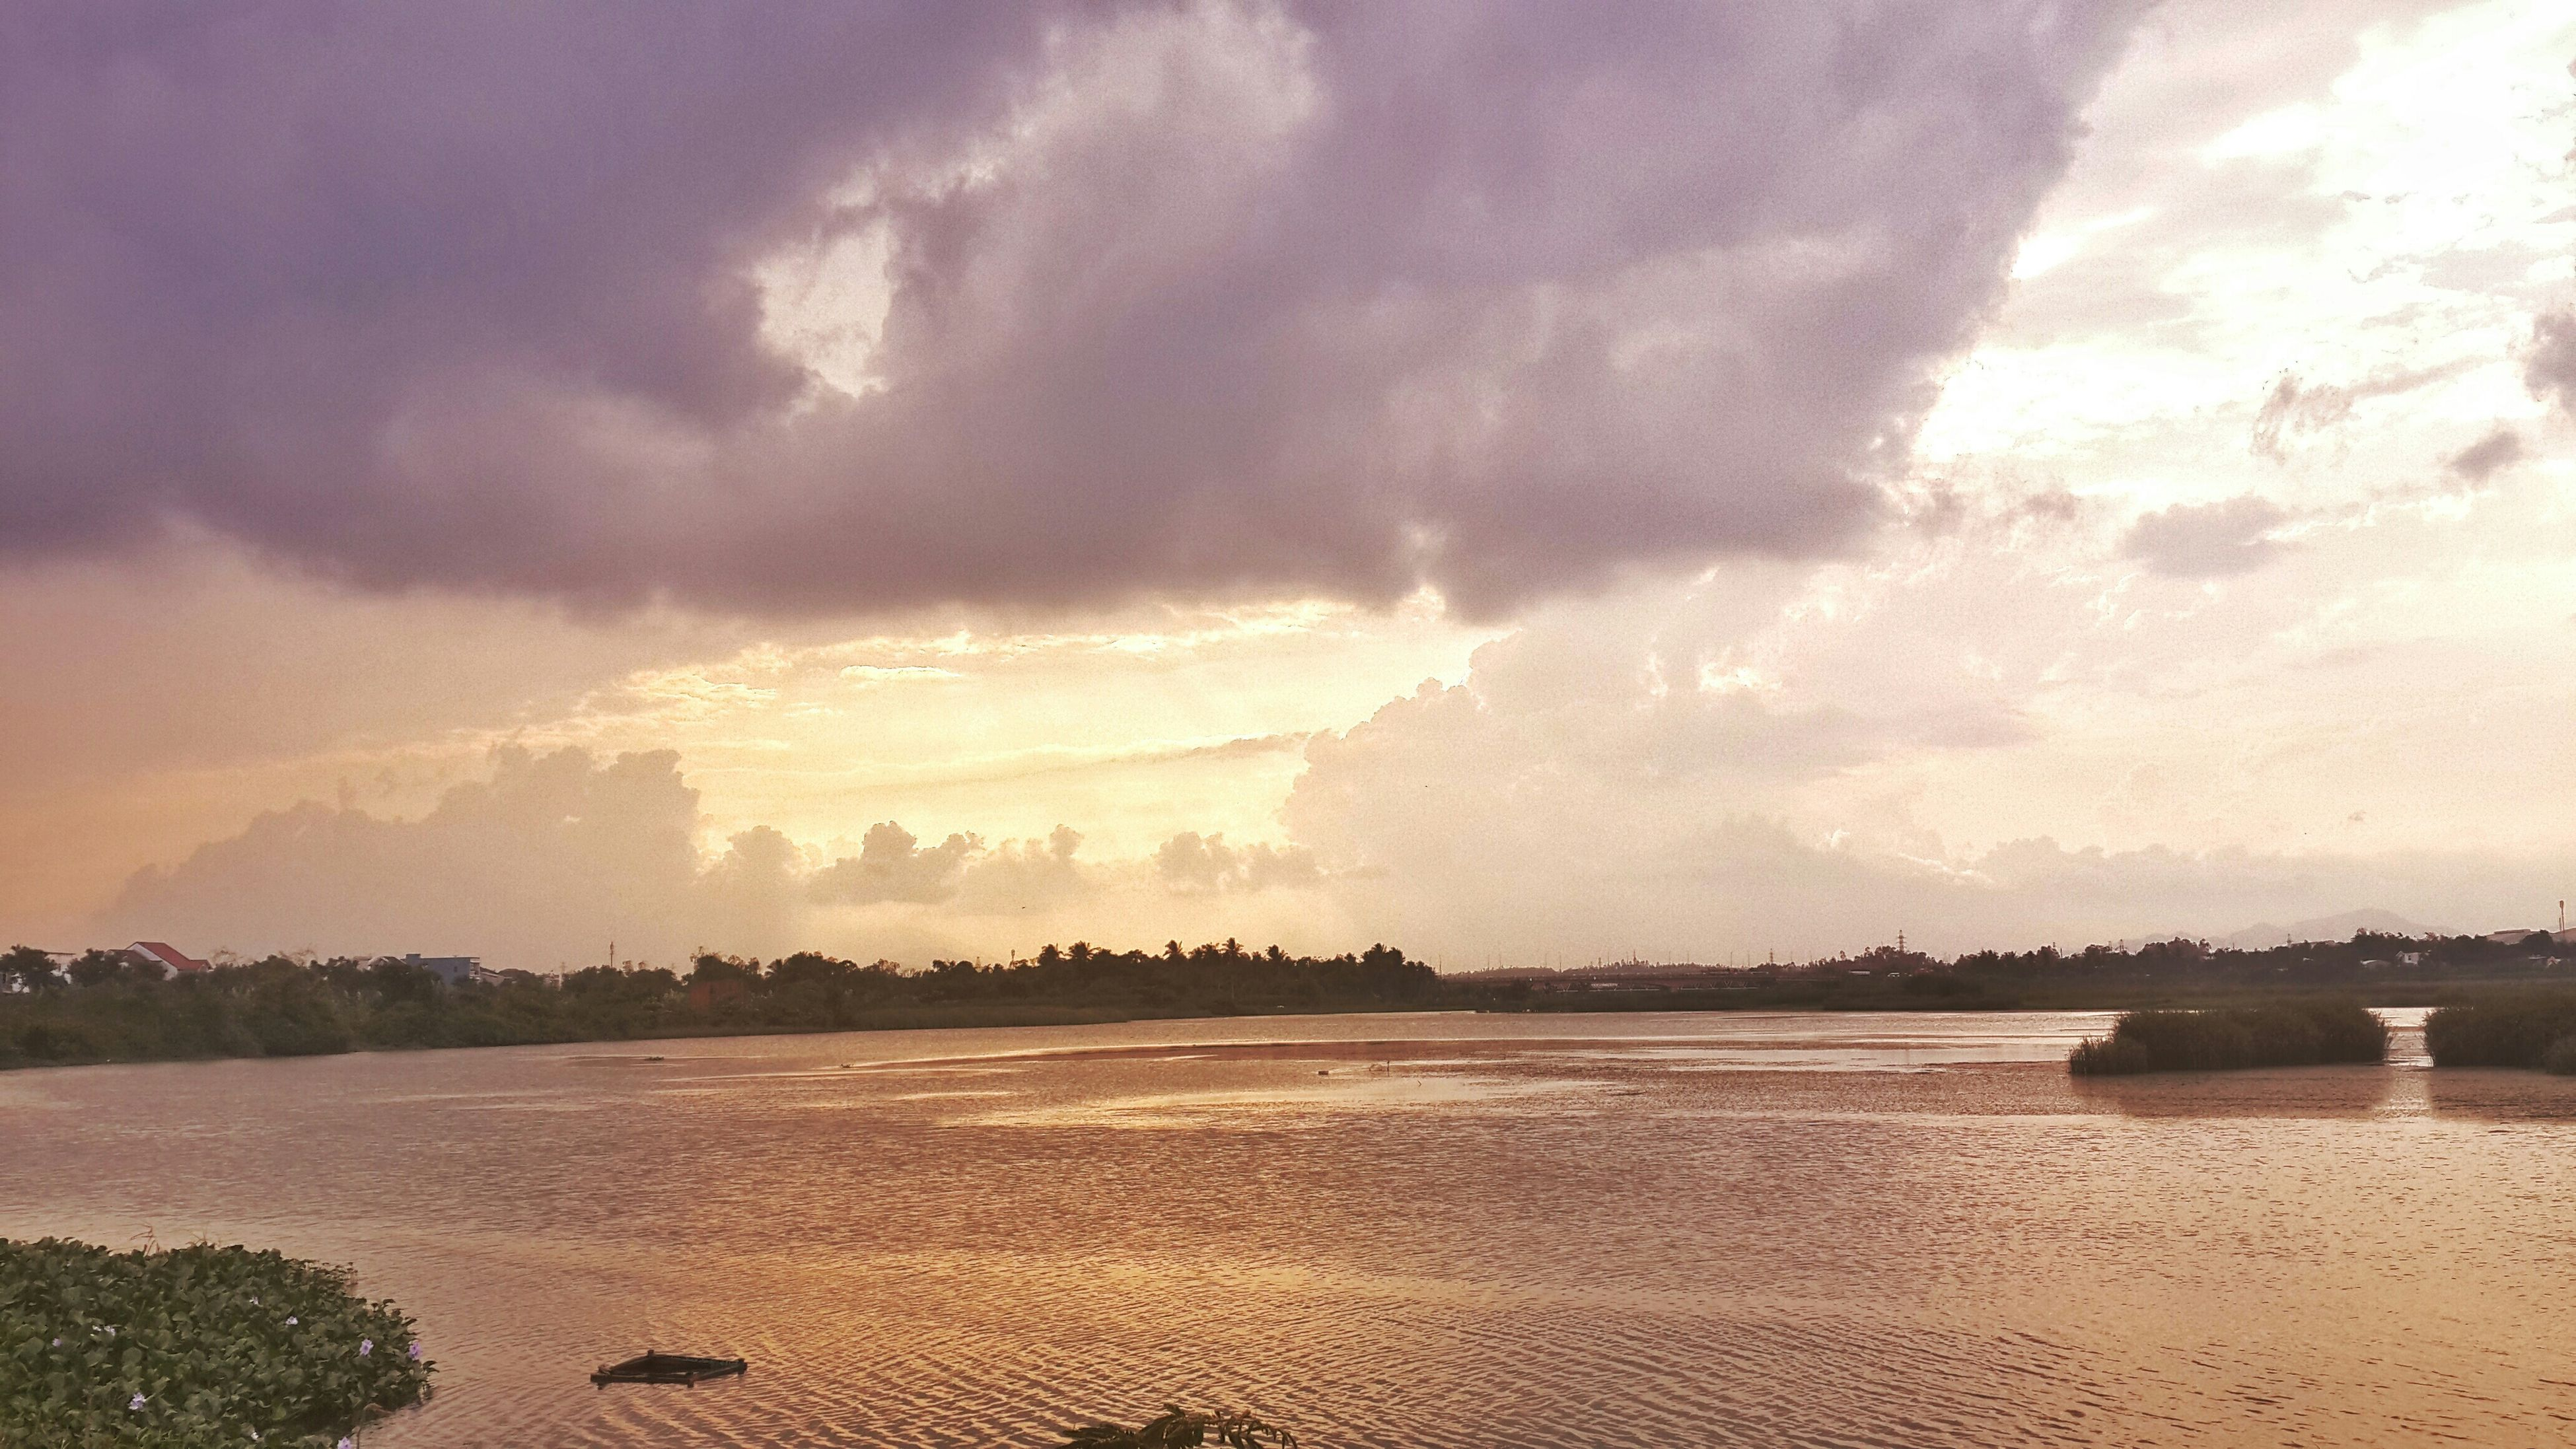 sky, water, cloud - sky, scenics, beach, tranquil scene, tranquility, beauty in nature, sea, cloudy, nature, shore, sunset, idyllic, sand, cloud, weather, outdoors, no people, dusk